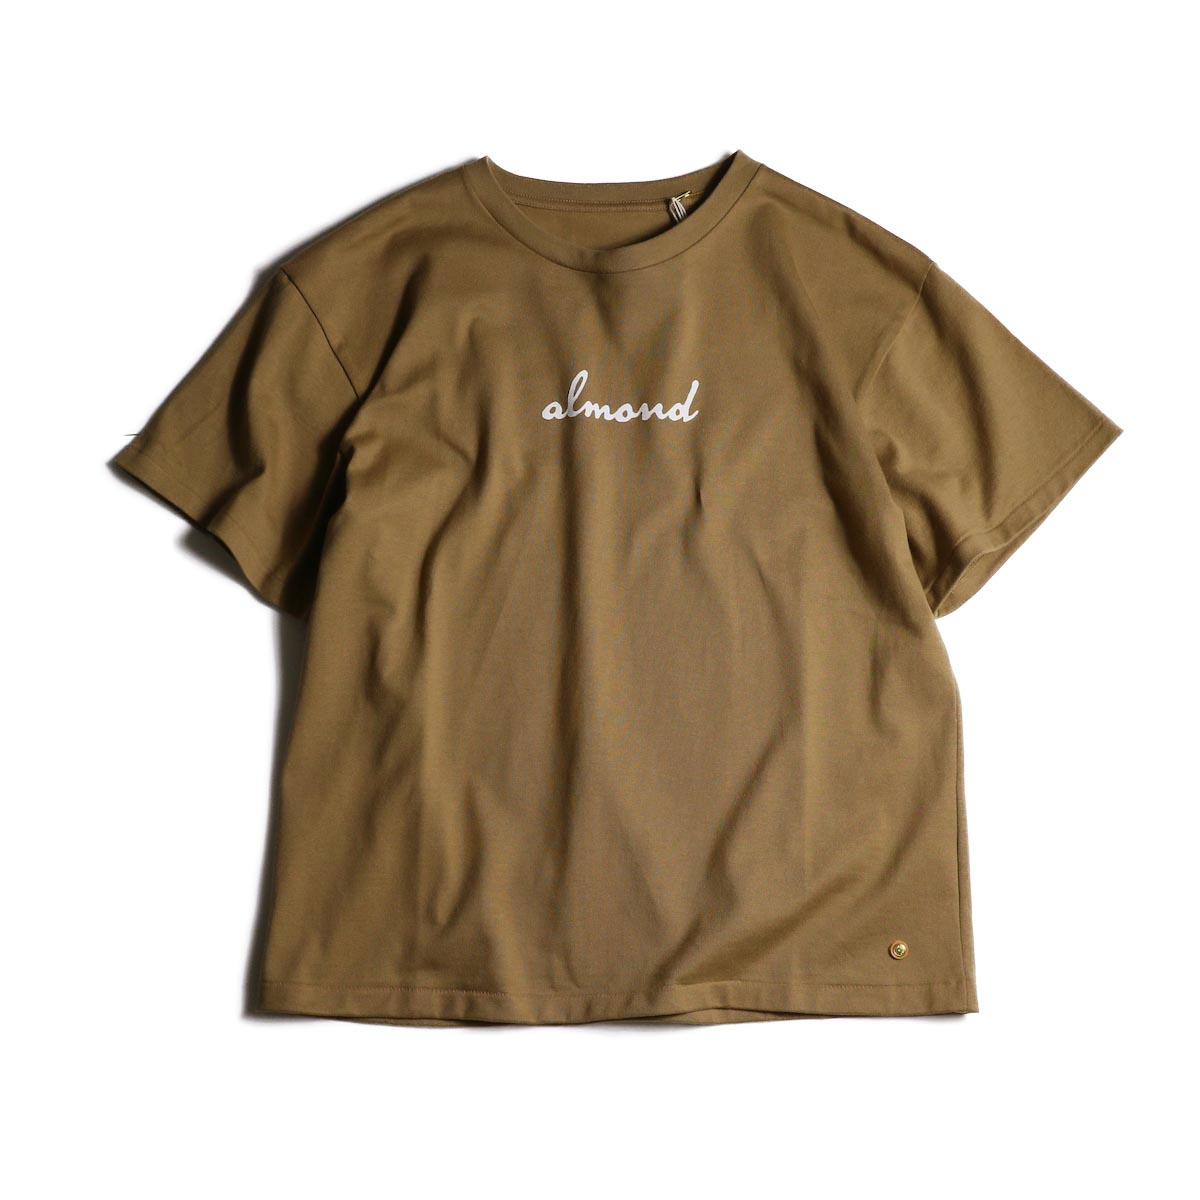 MASTER & Co. / Print T-Shrit (almond)正面